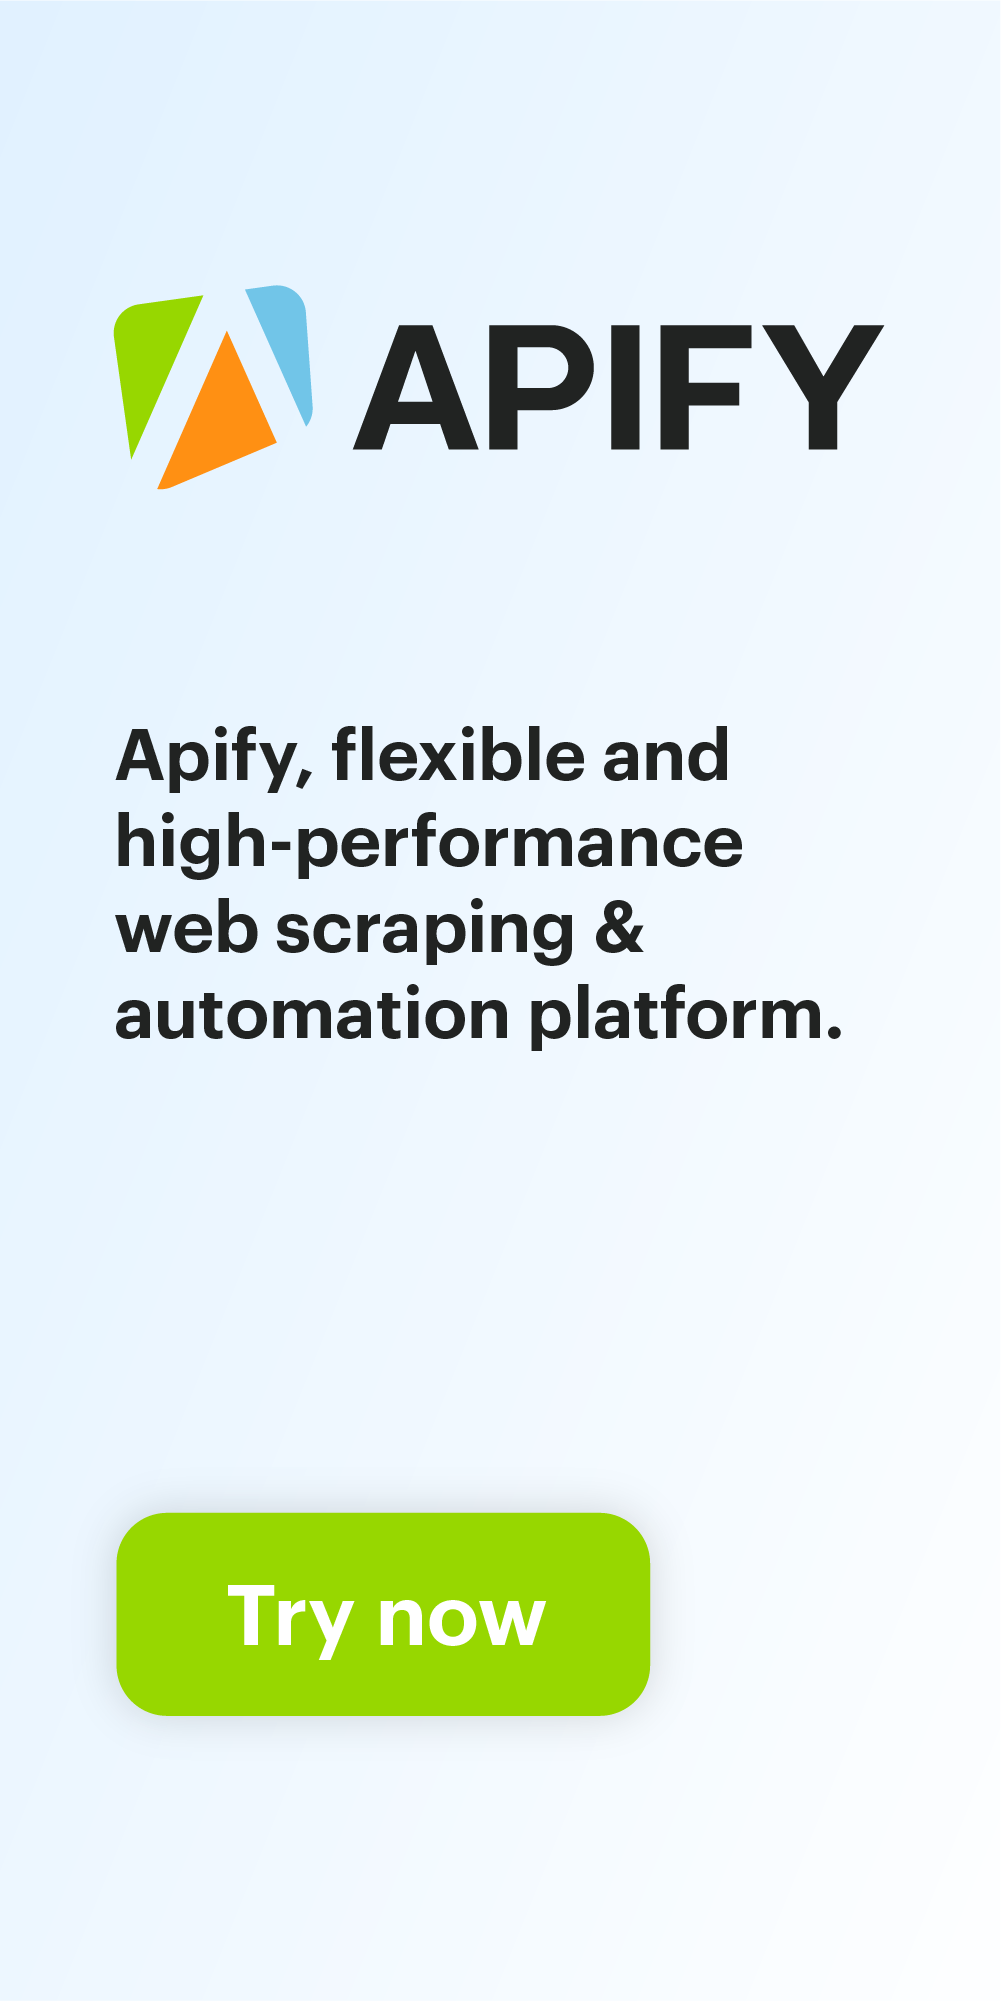 Product Apify